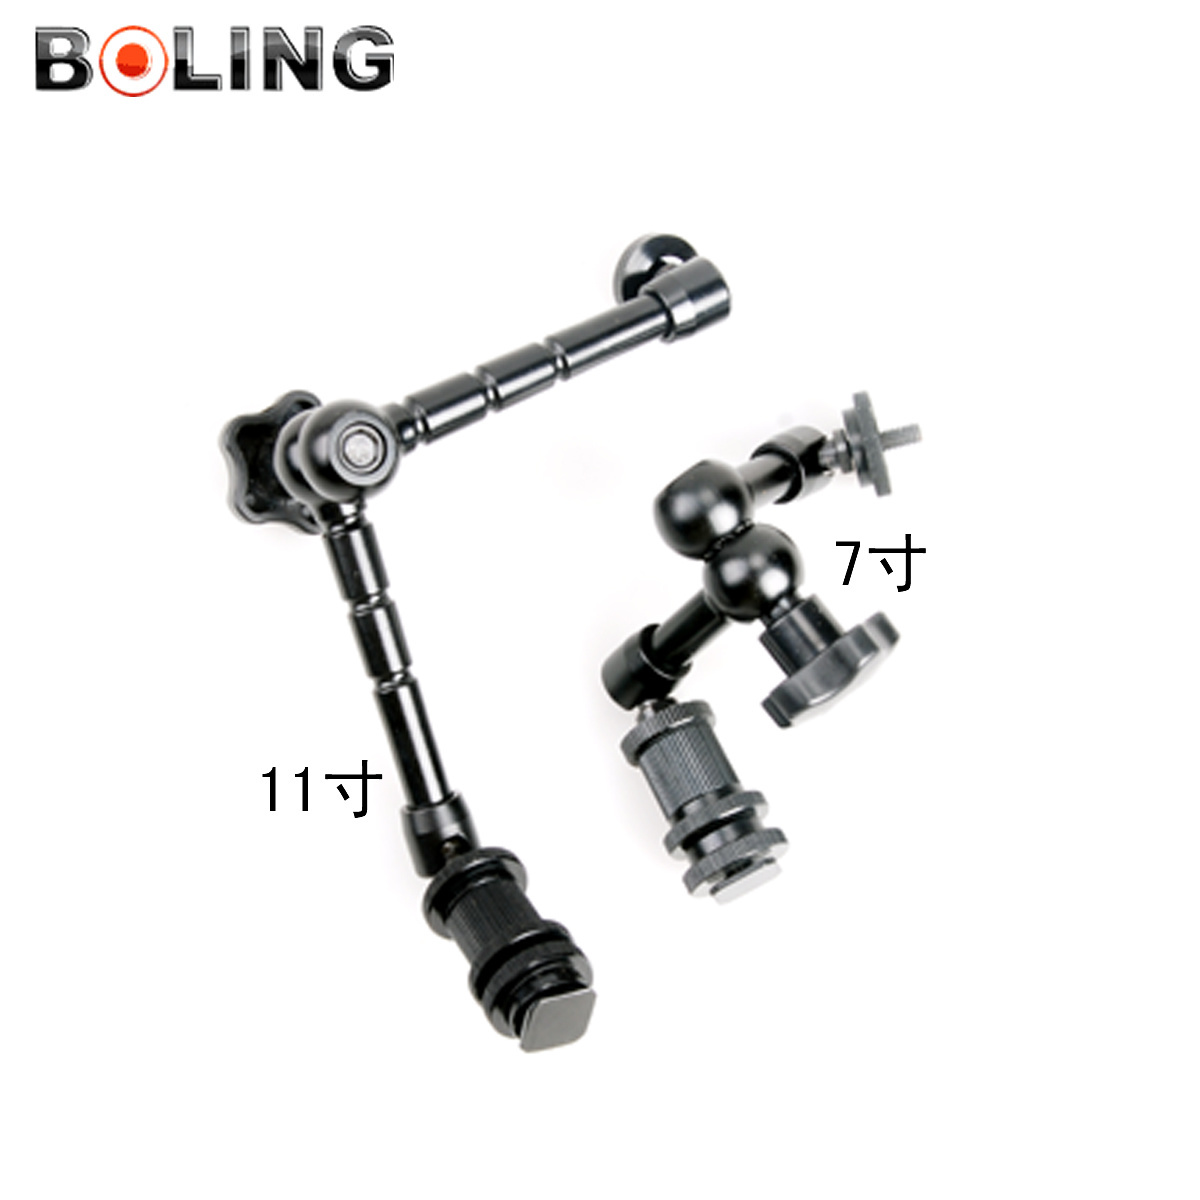 wholesale Wholesale Photographic equipment boling backhoes 11 photography light video light dv monitor mount<br><br>Aliexpress